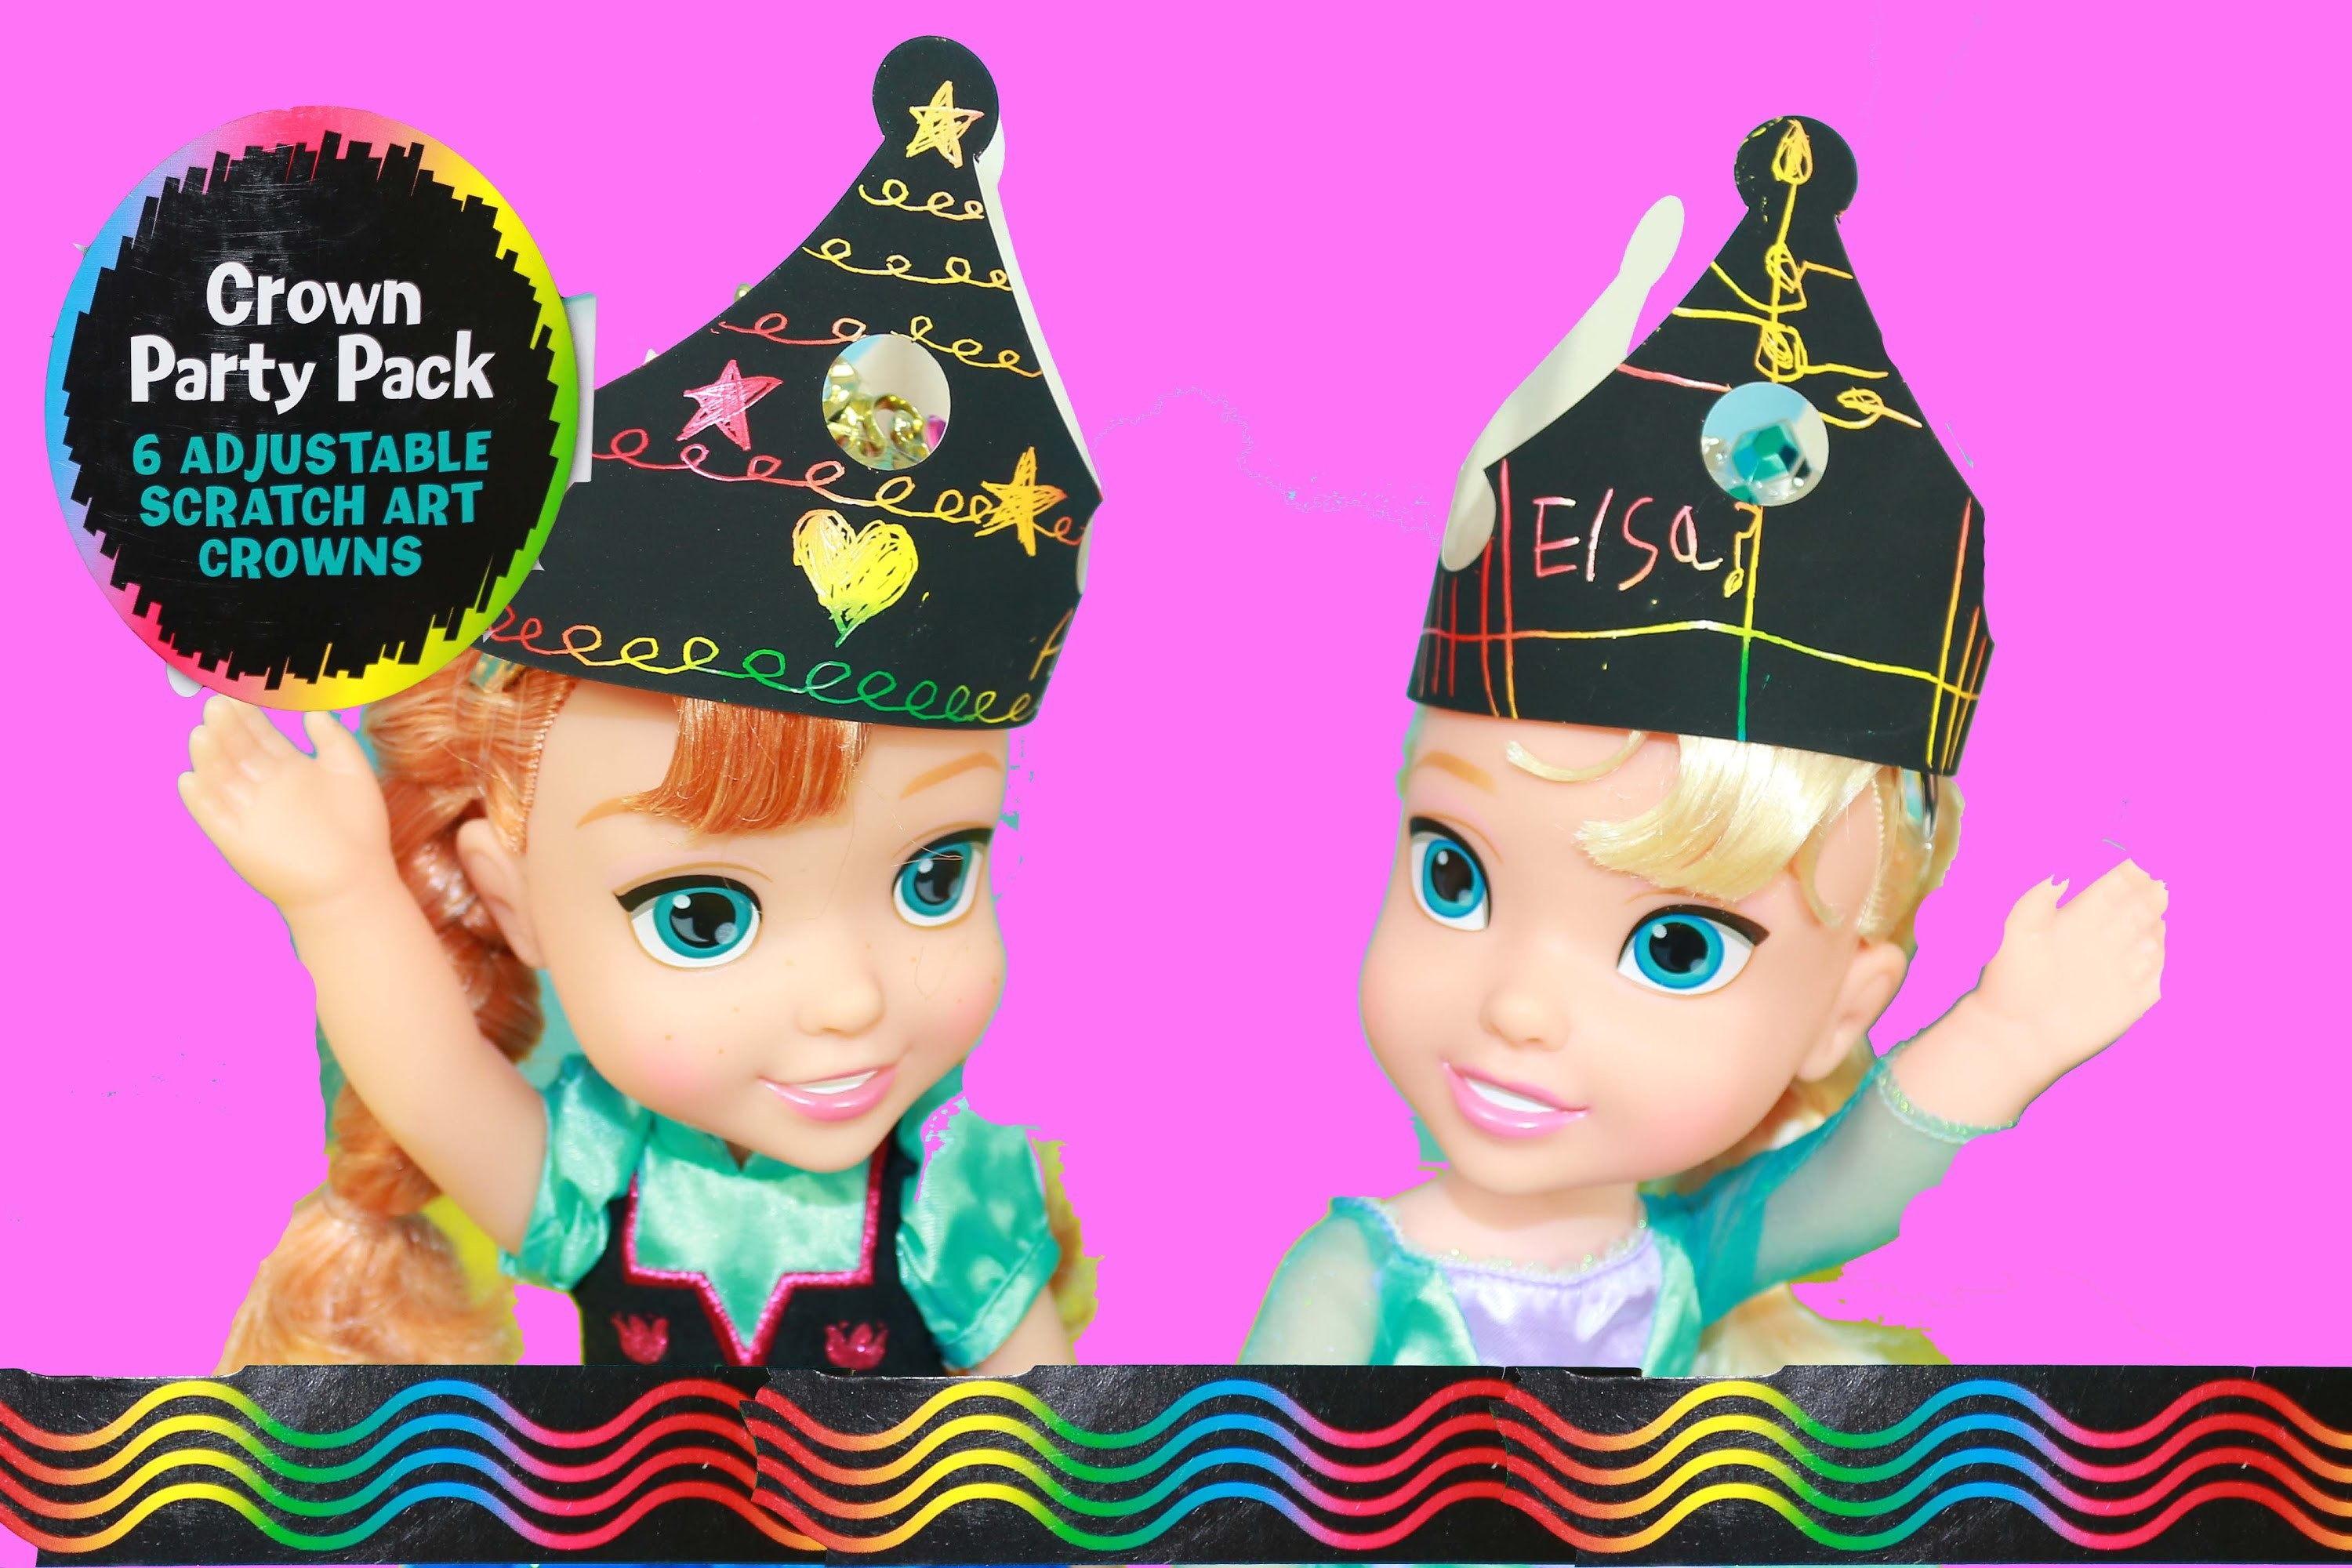 Disney Princess Frozen Baby Dolls DIY Crowns for Birthday Party Presents Fun Disney Princesses